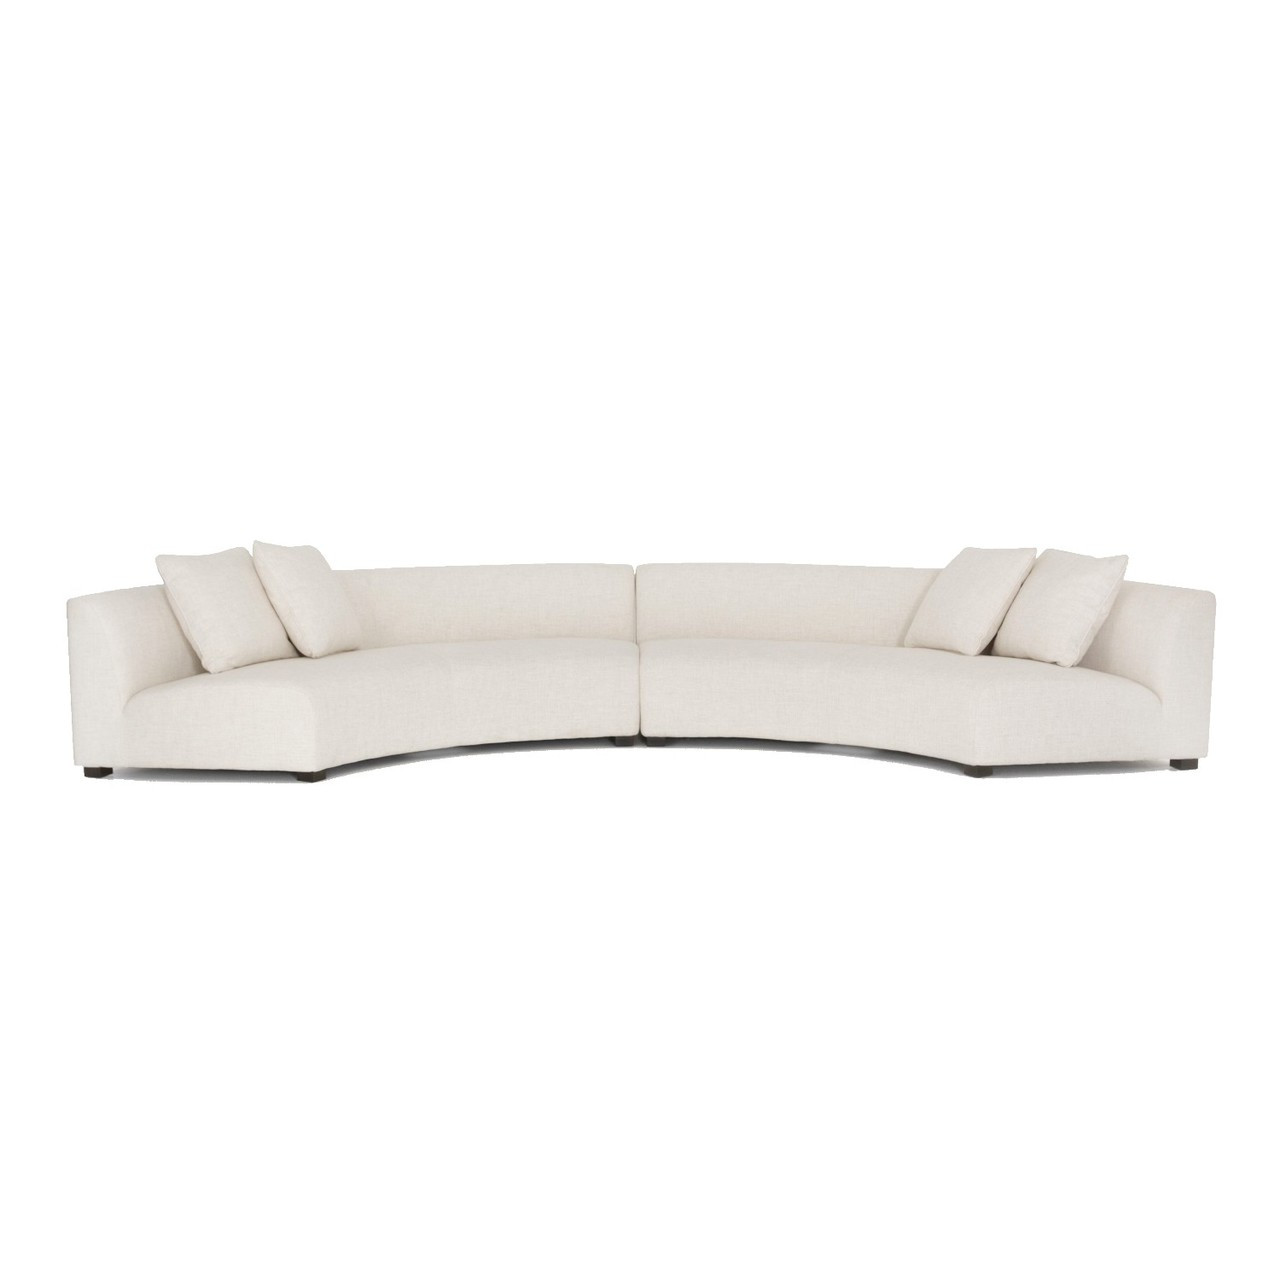 Next Sofa Measurements Liam Modern Cream 2 Piece Curved Sectional Sofa